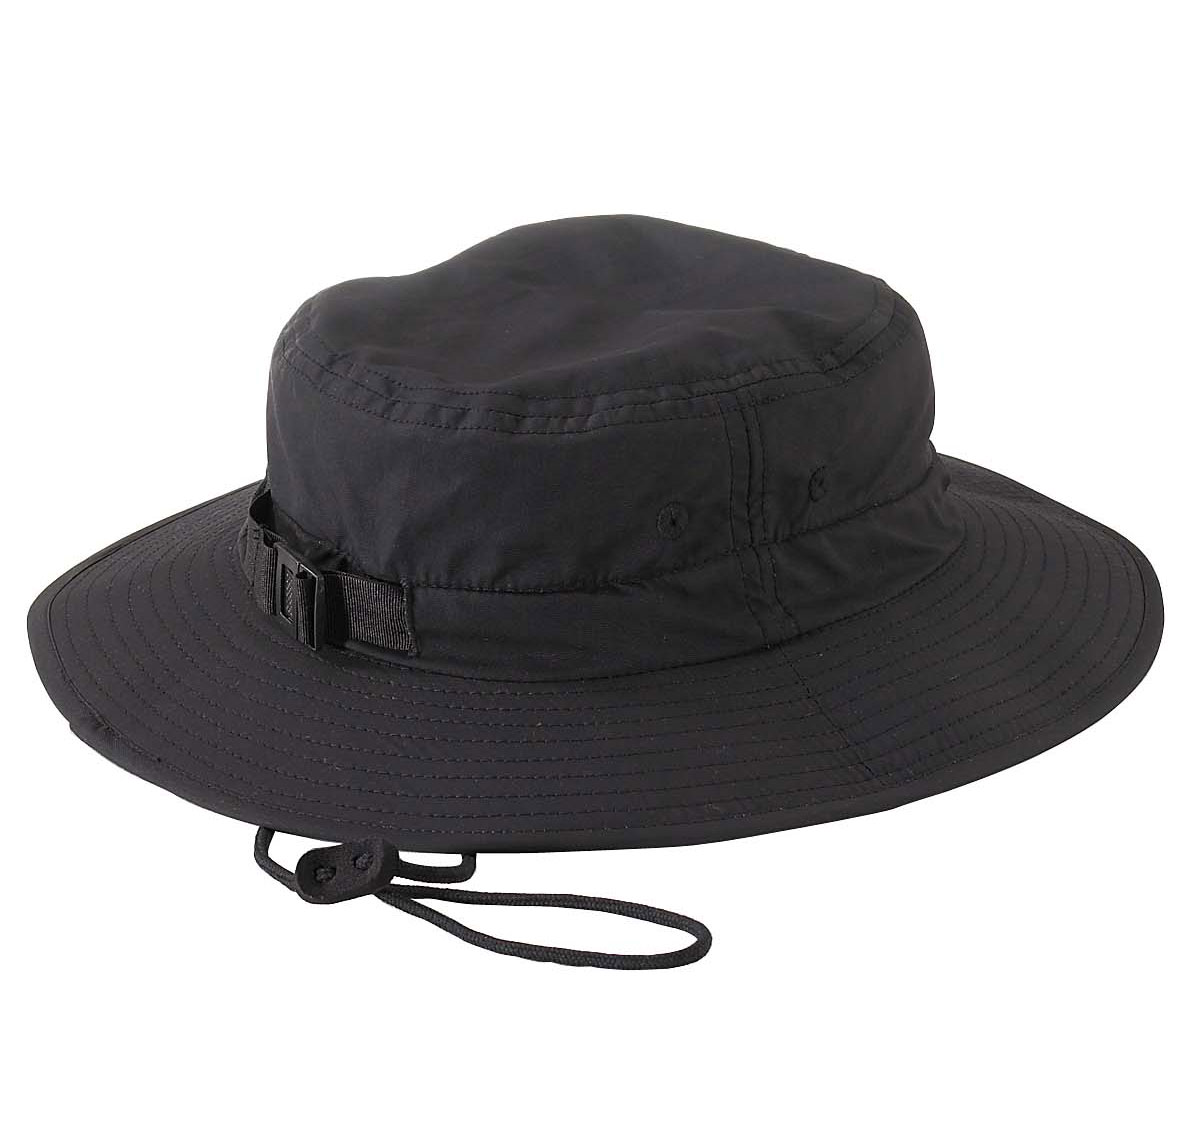 Adjustable Fit Nylon Guide Hat